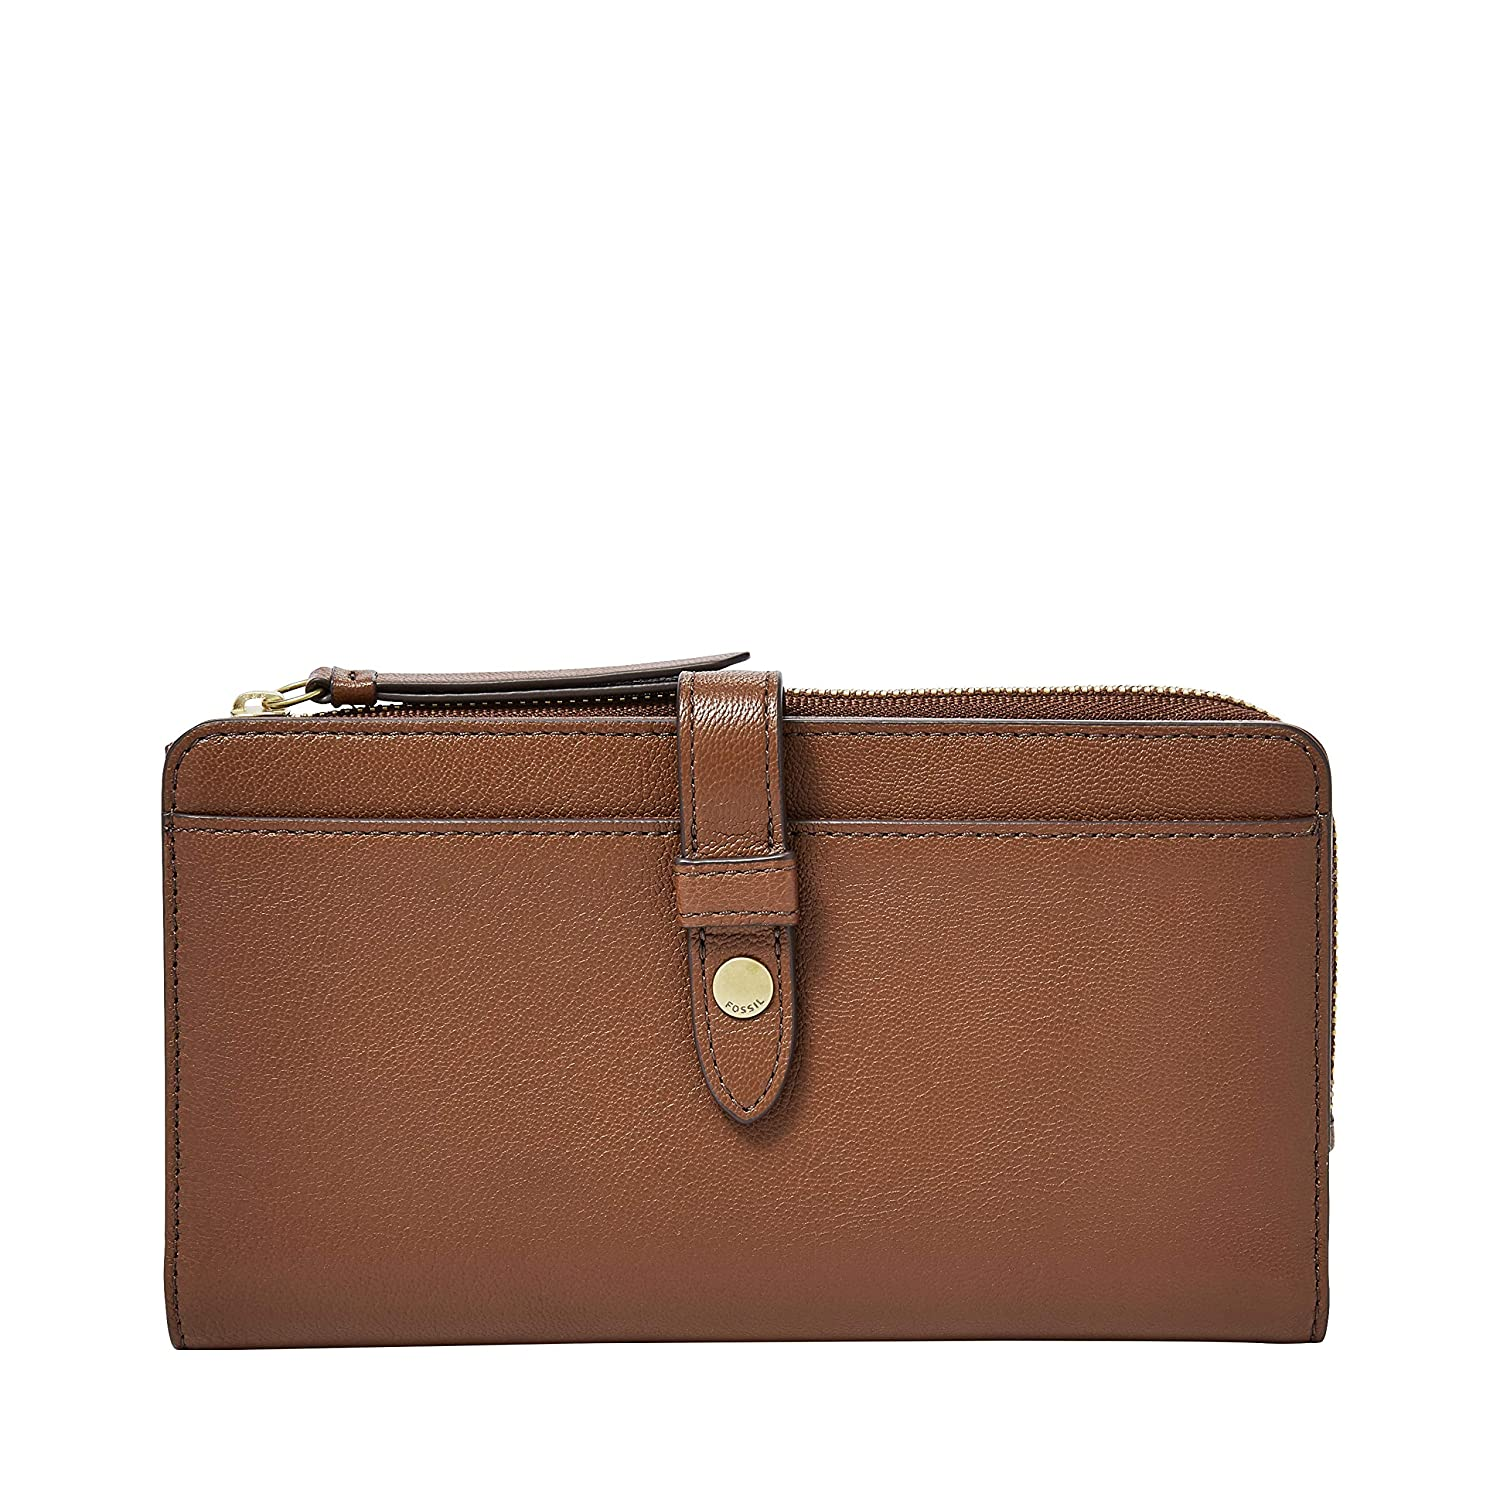 Fossil Women Fiona Leather...